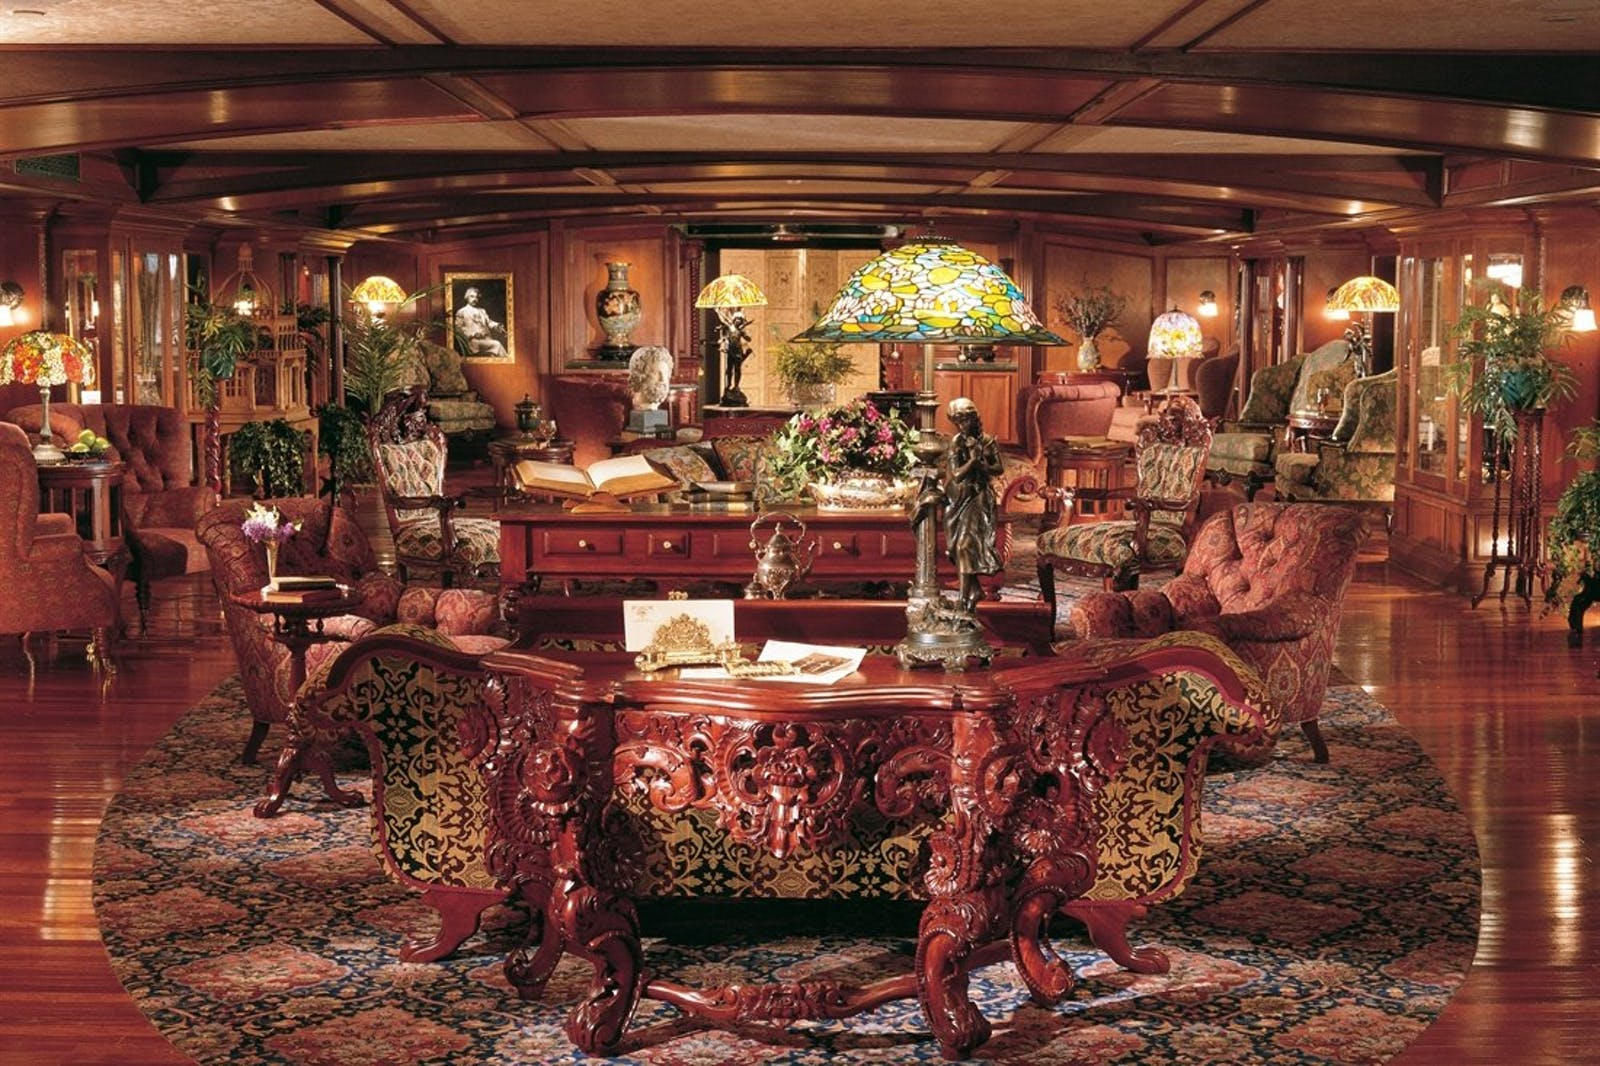 Decadent interiors on the American Queen